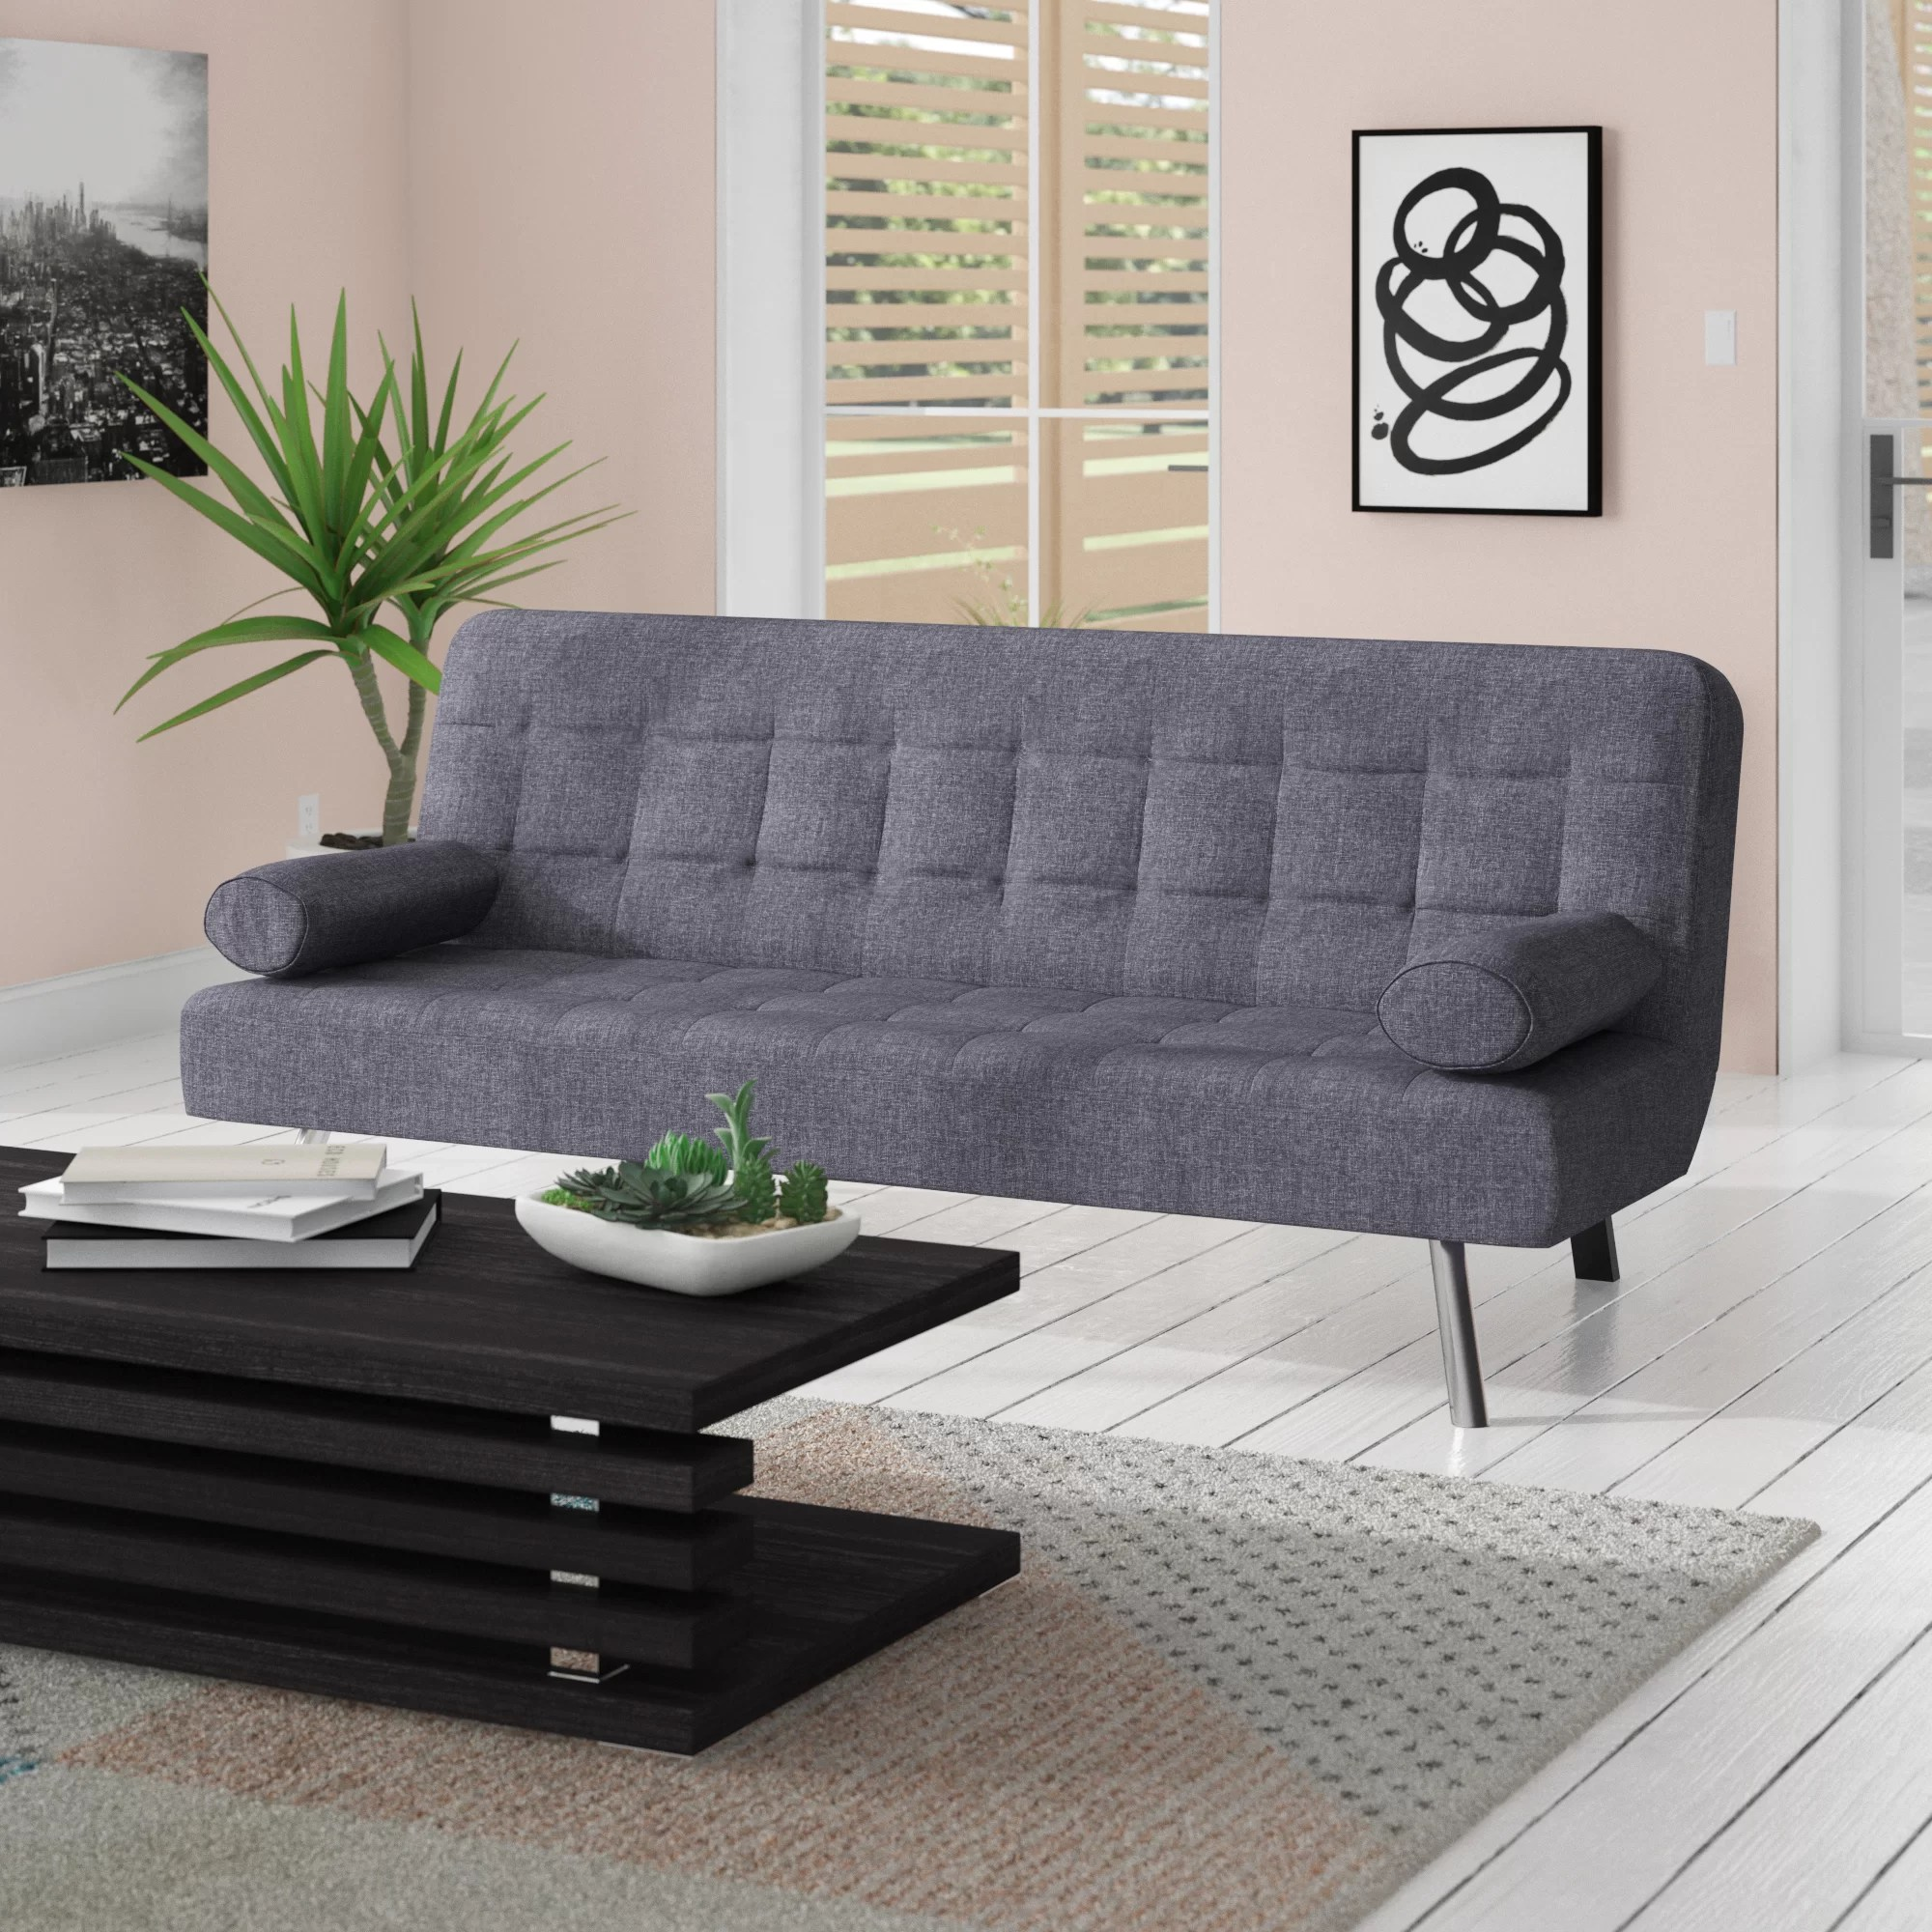 Table Clic Clac Ratliff 2 Seater Clic Clac Sofa Bed